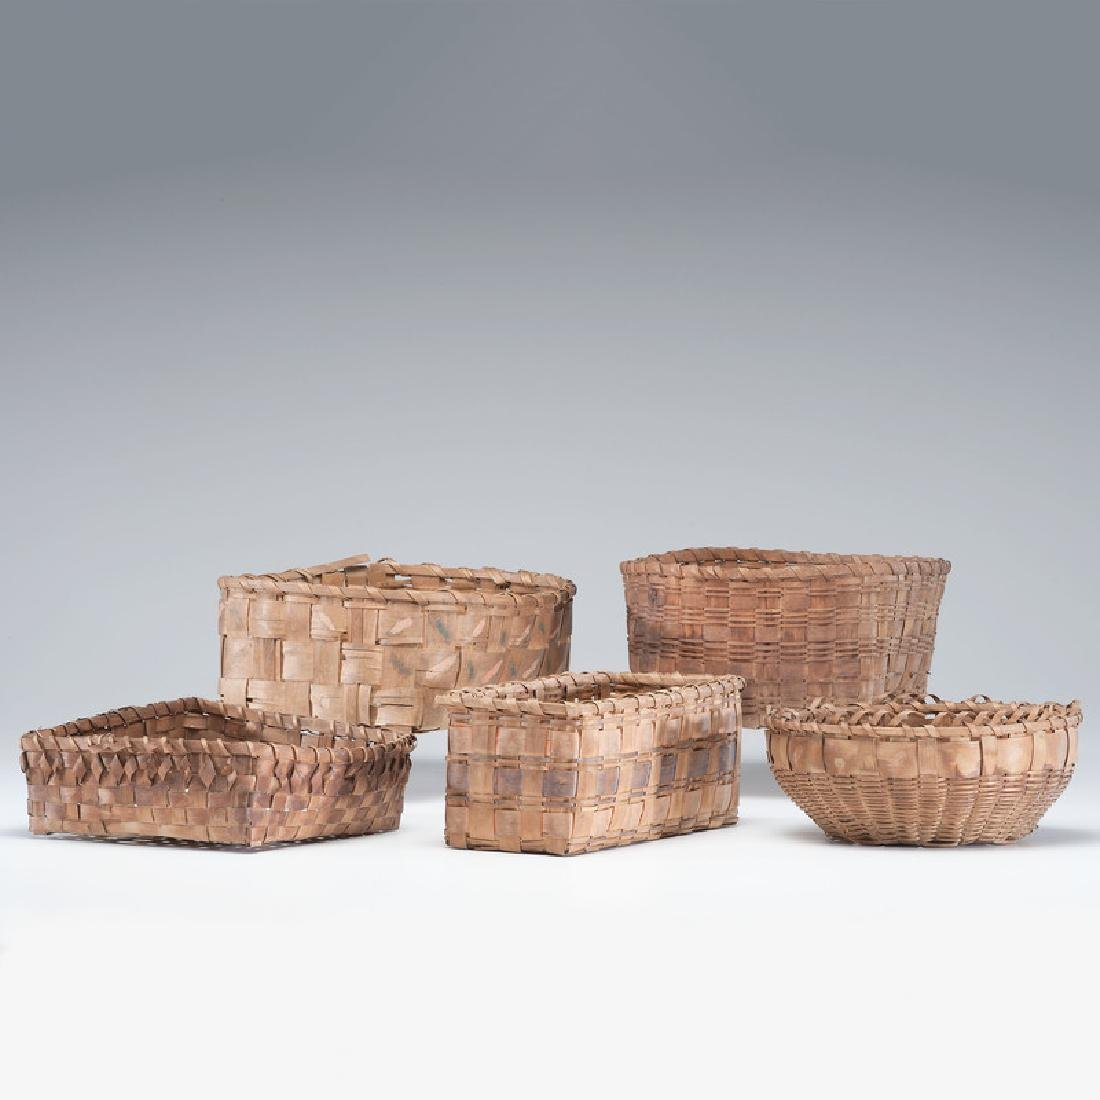 Haudenosaunee (Iroquois) Potato Stamped Baskets